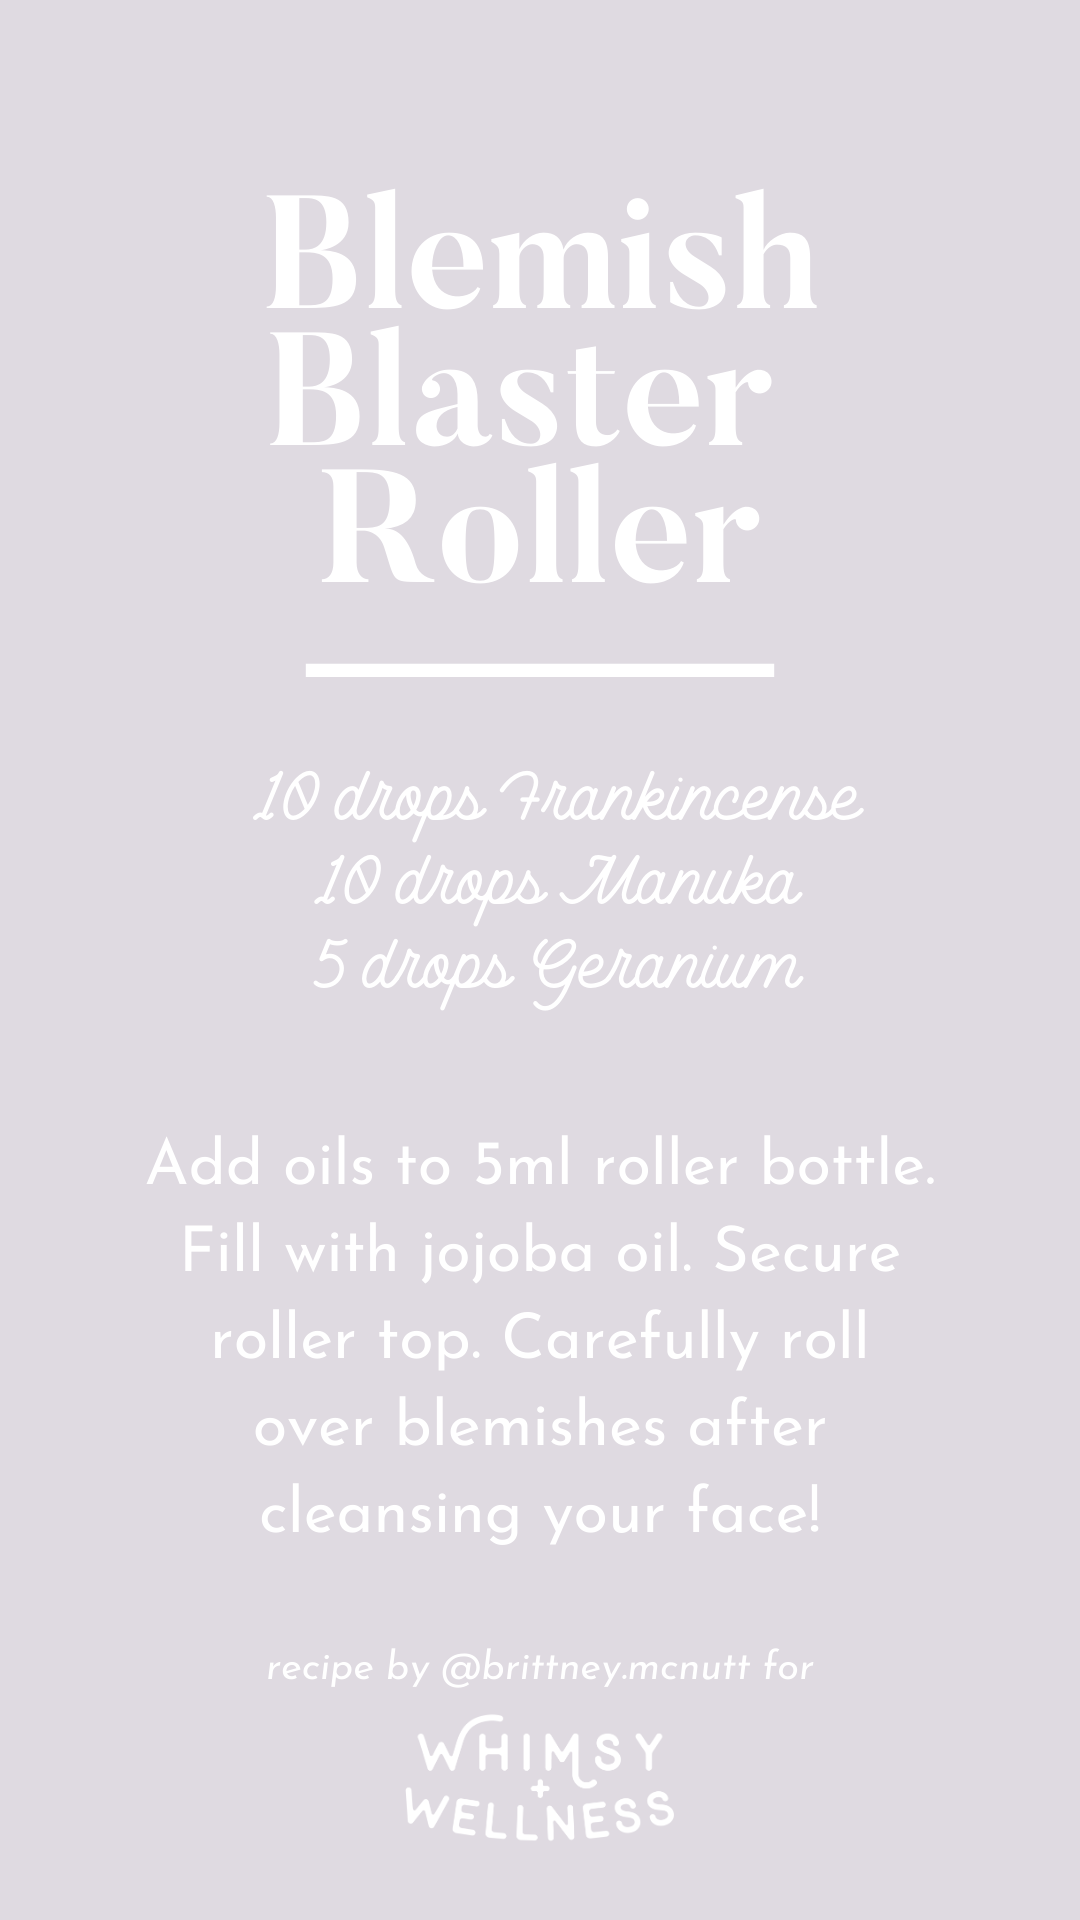 Blemish blaster roller recipe blend using Young Living essential oils